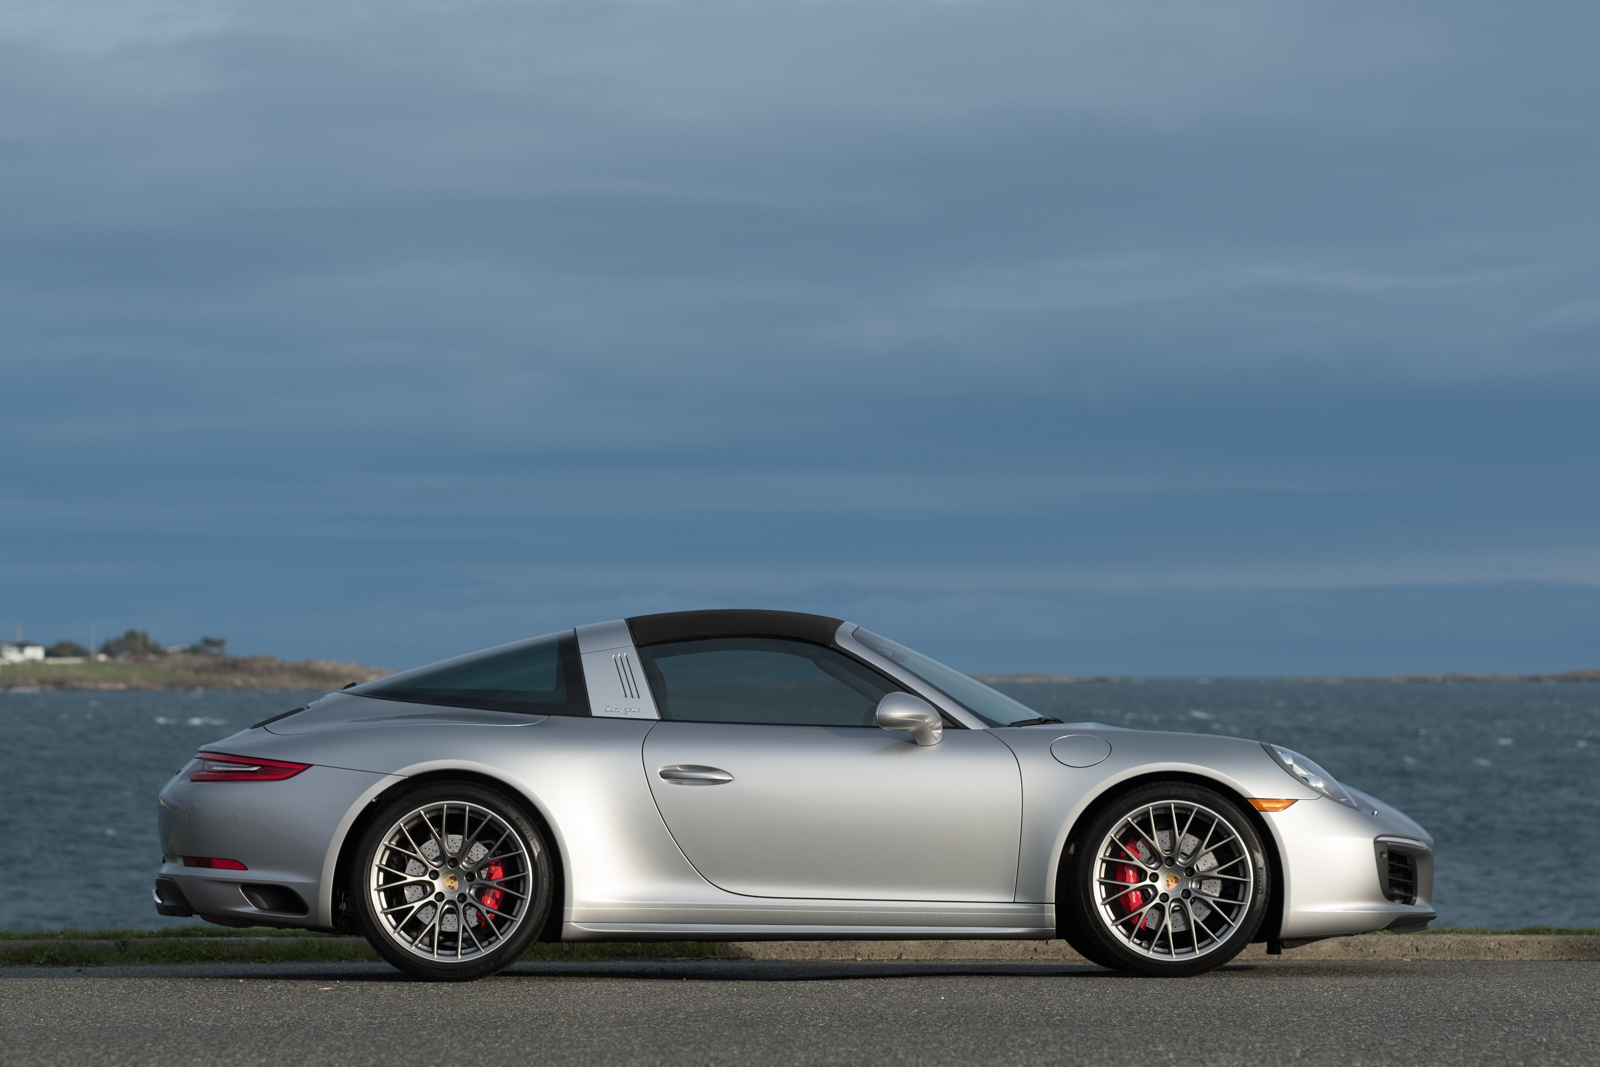 2017 Porsche 911 Targa 4S - Silver Arrow Cars Ltd.